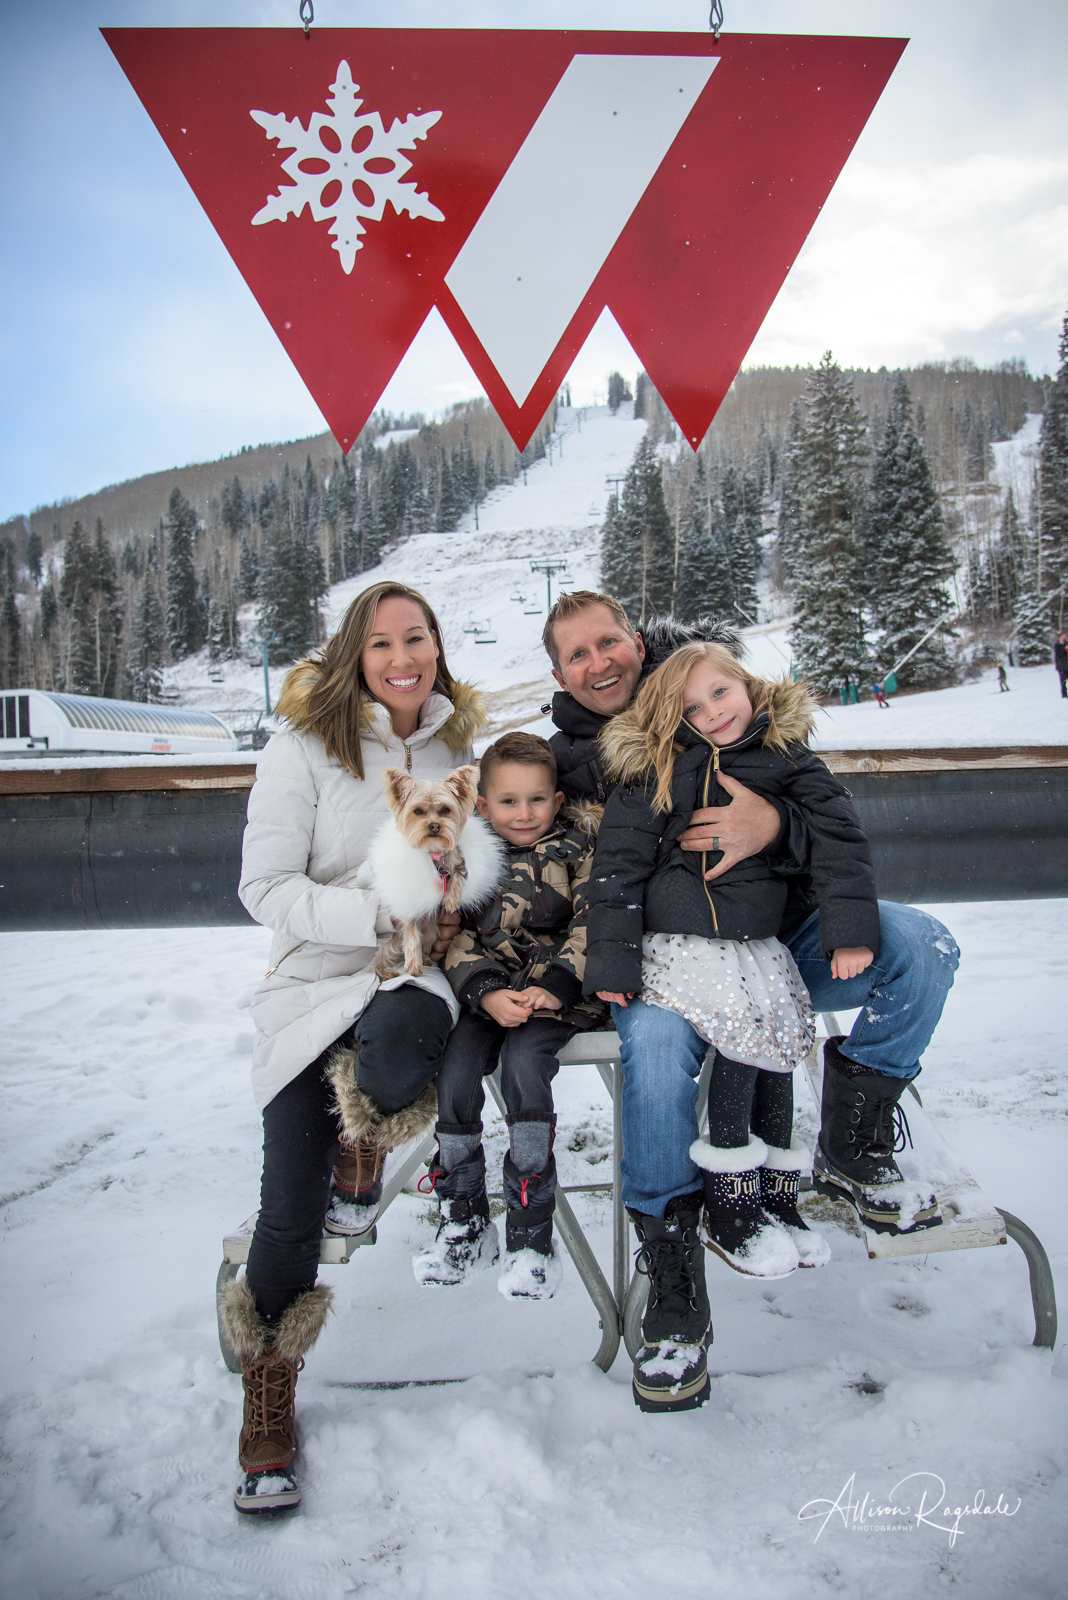 The Winters Family Durango Colorado Portraits at Purgatory Ski Resort Photographed by Durango CO Family Photographer Allison Ragsdale Photography